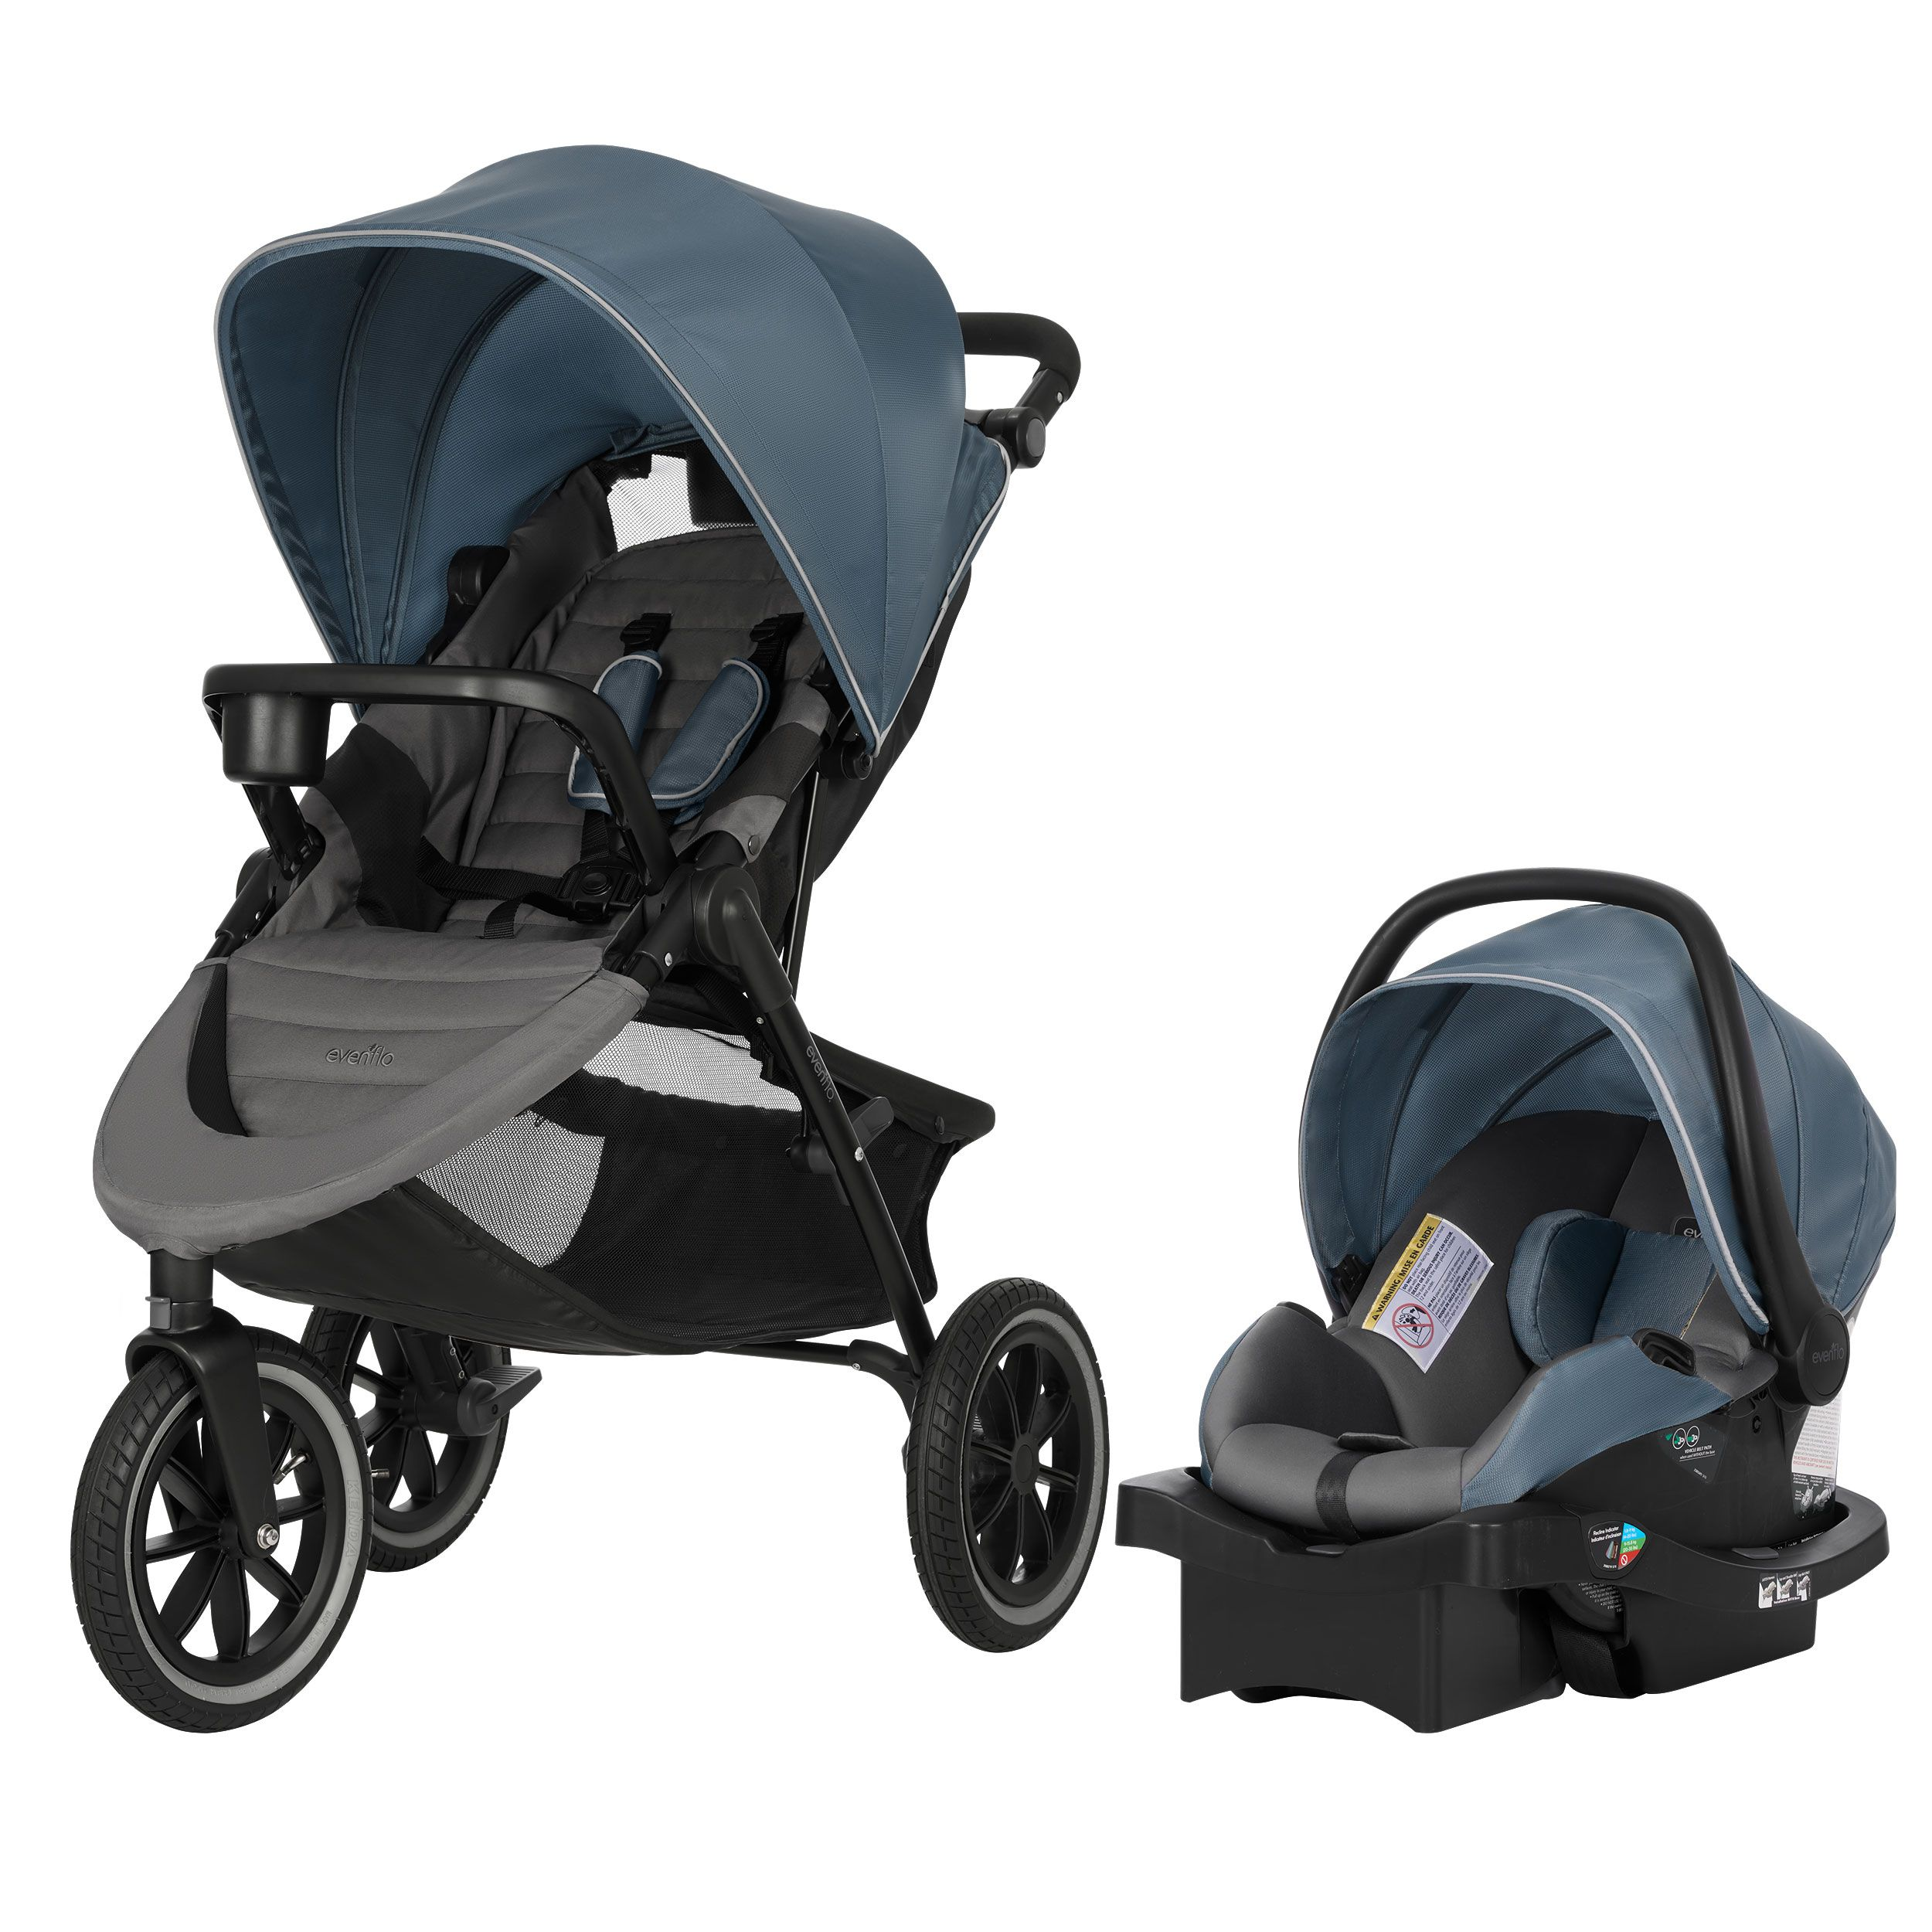 Baby Baby car seats, Travel system, Baby strollers